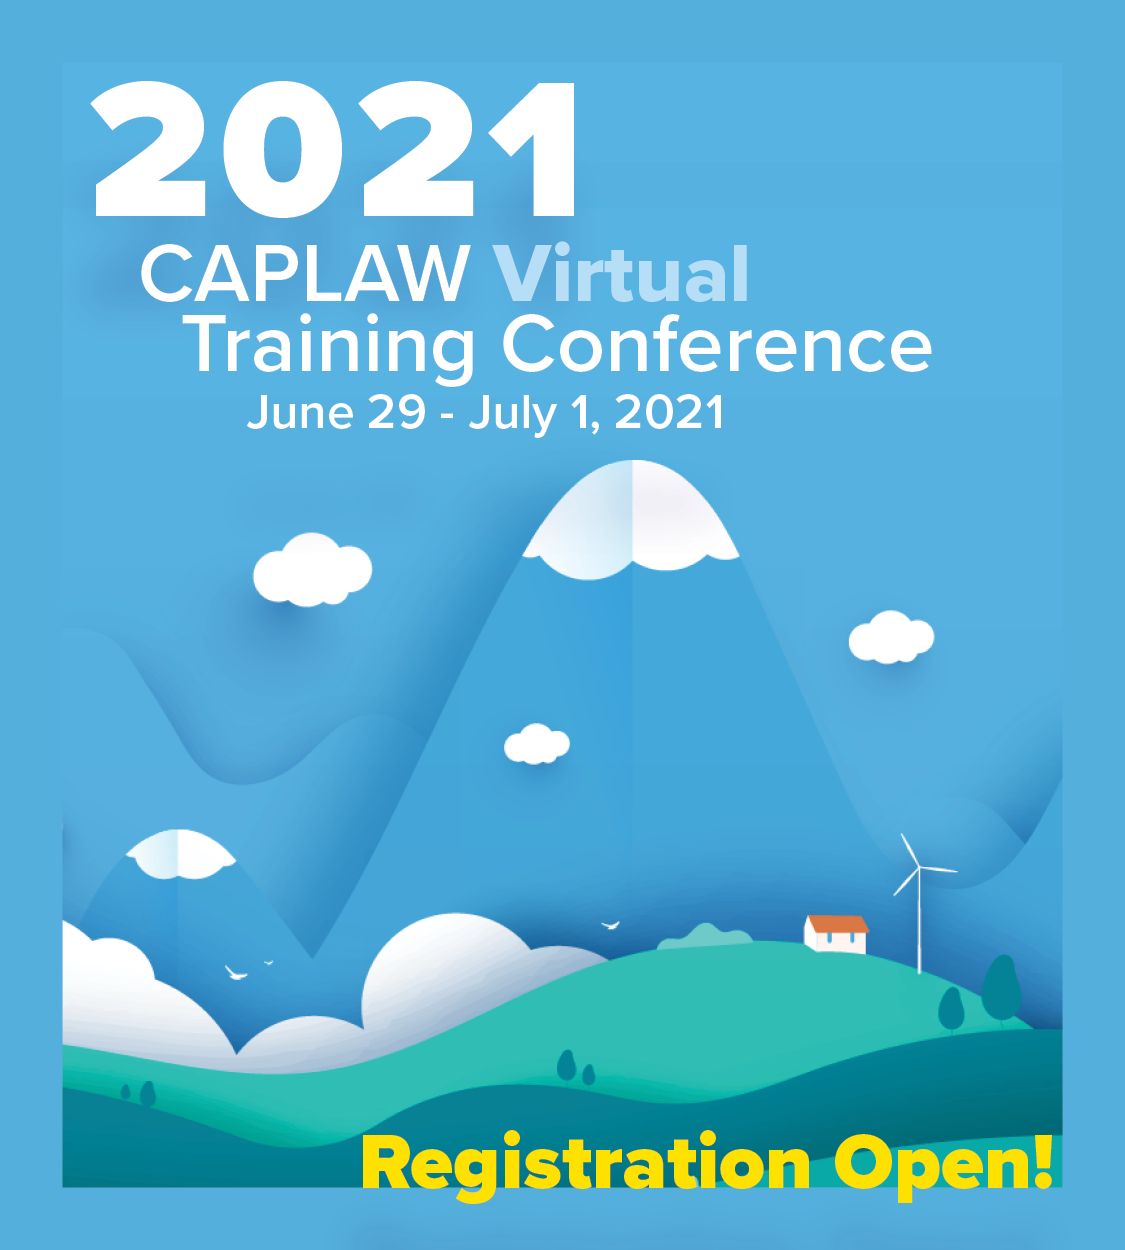 2021 caplaw conference registration